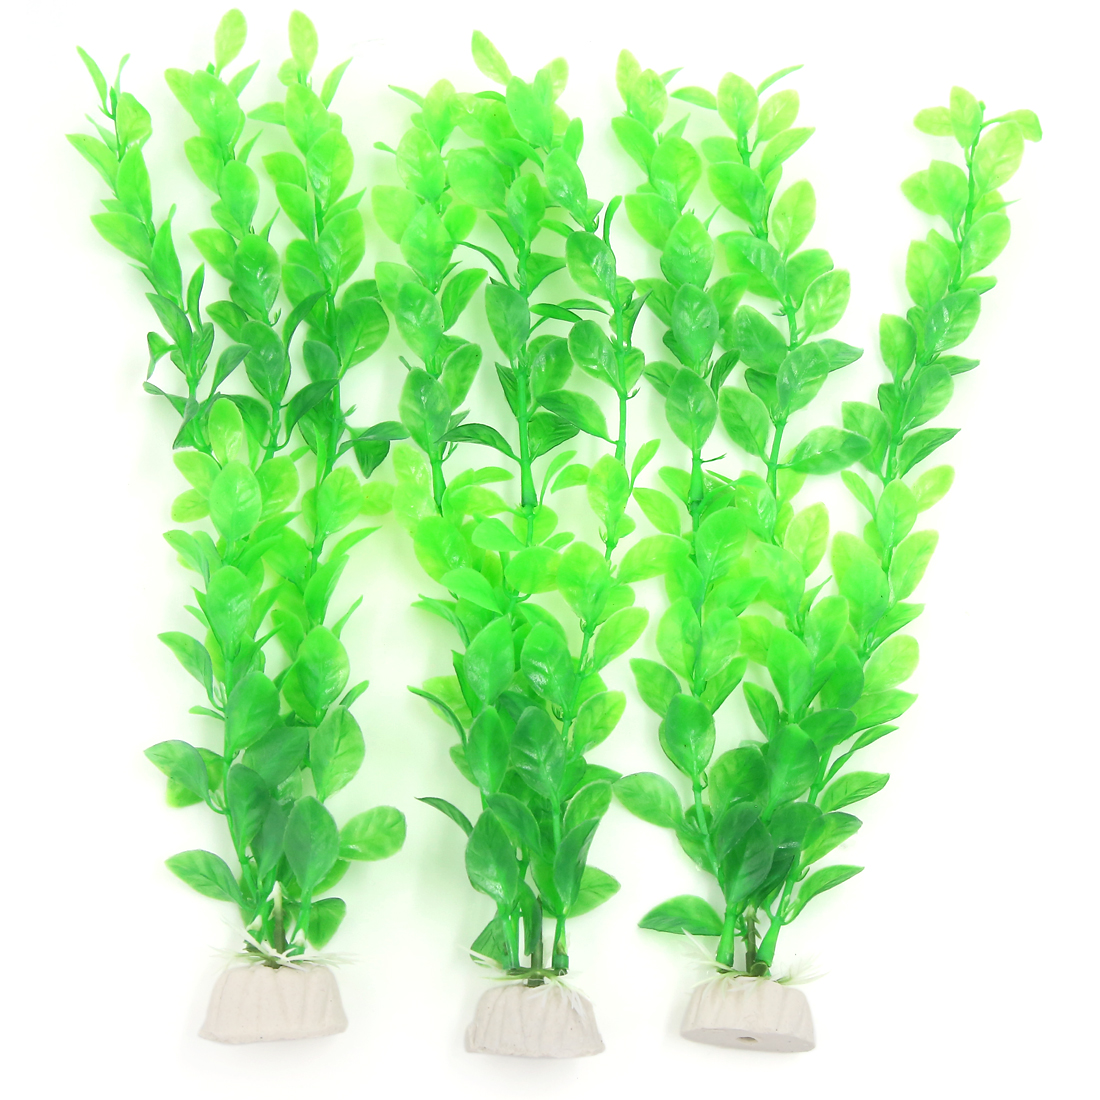 "3 Pcs Aquarium Fish Tank Green Plastic Artificial Plants 10.6"" Height"